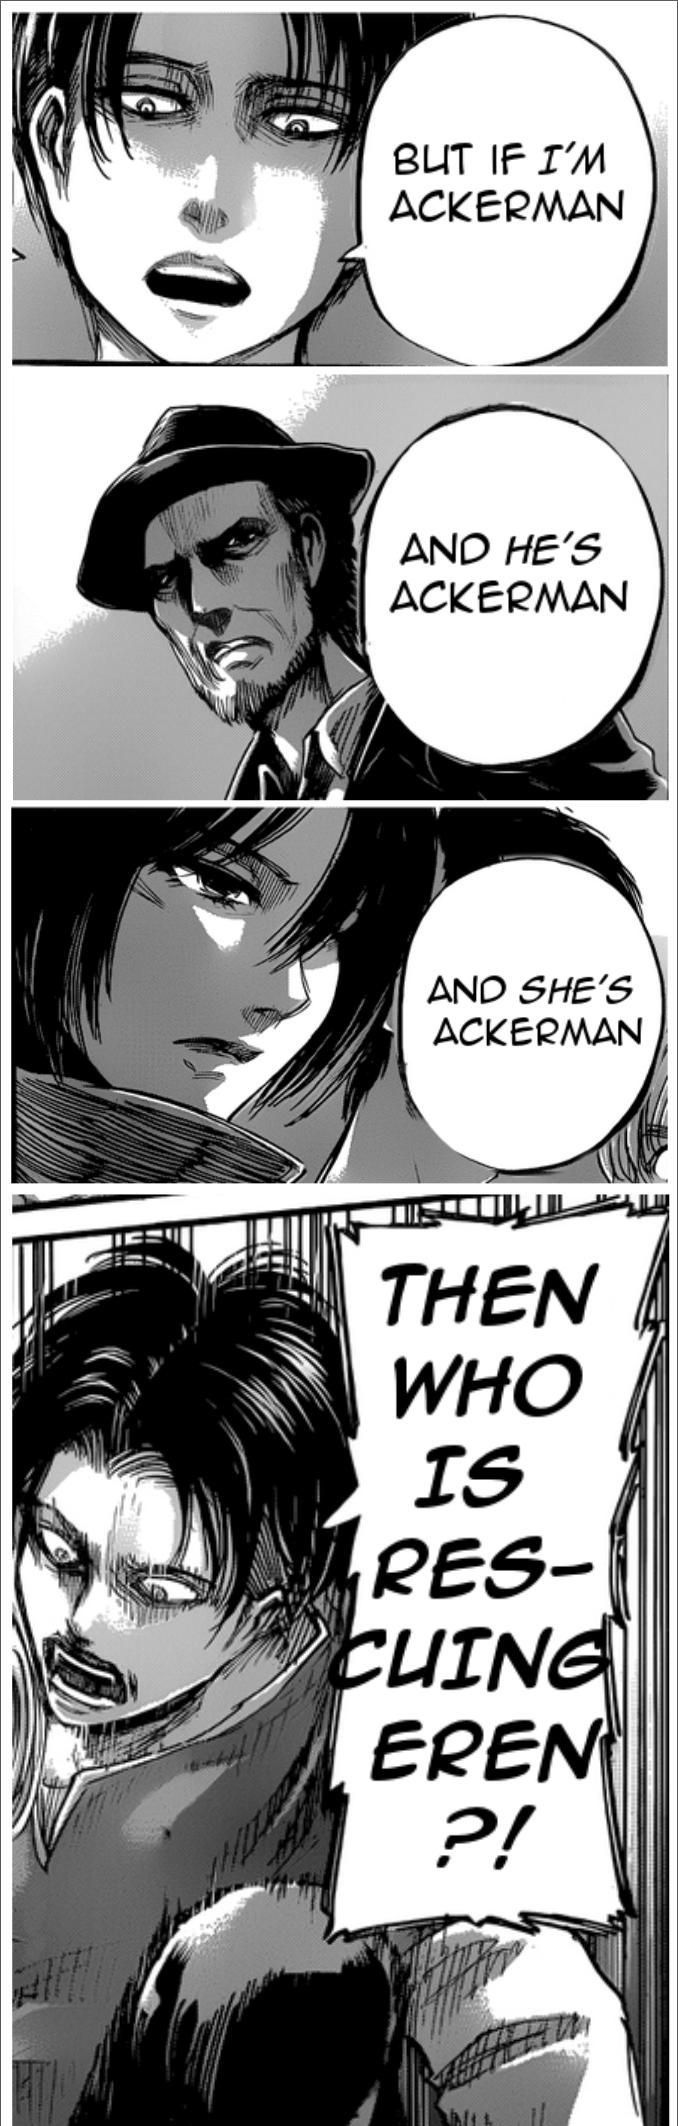 I love this so much. Attack on Titan